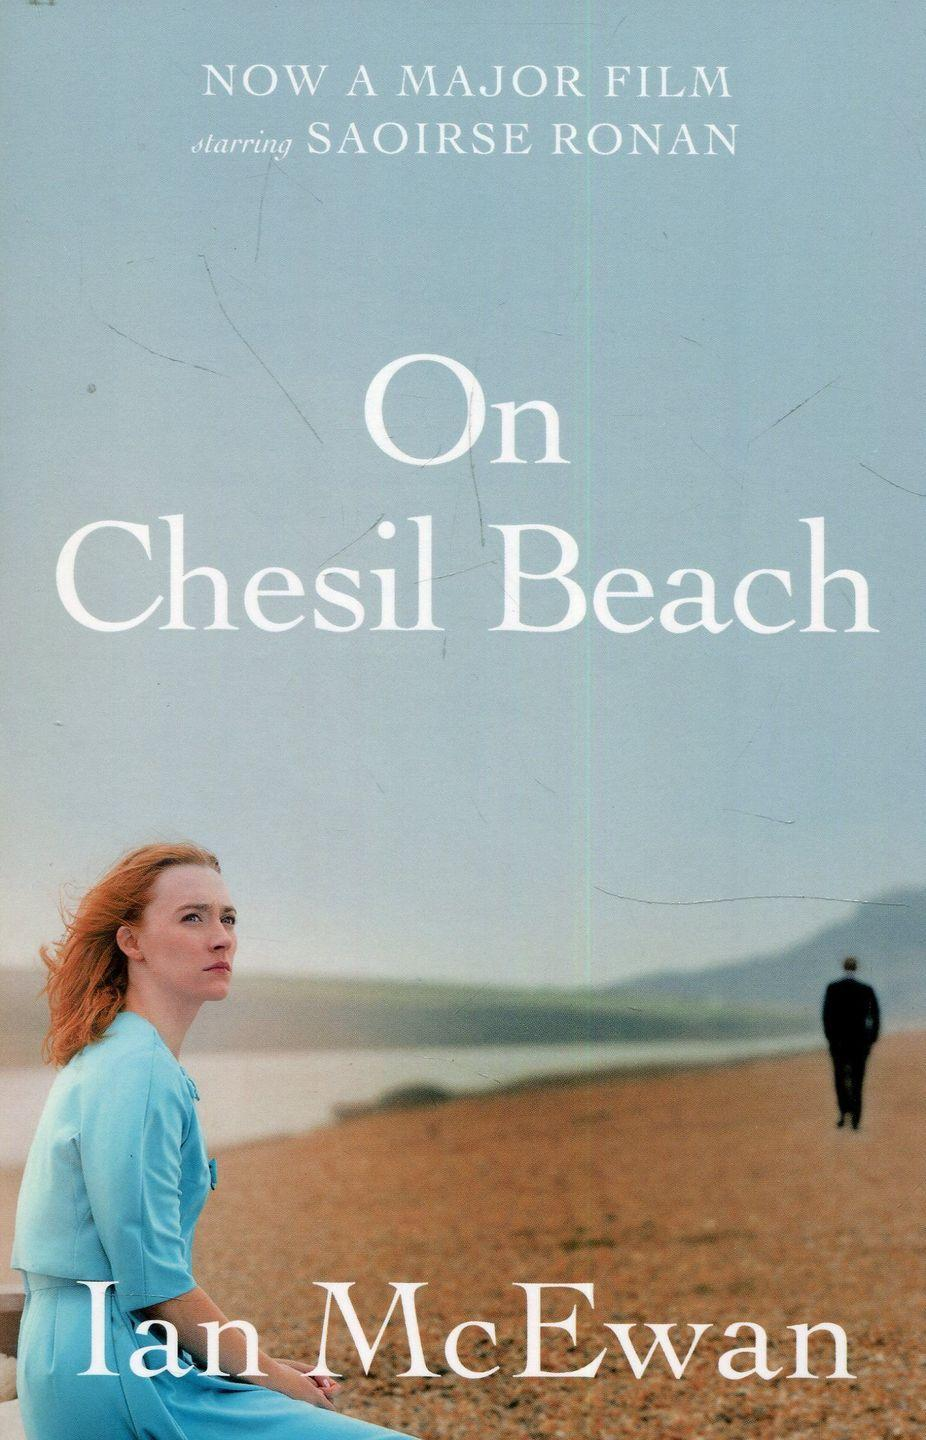 "<p>The bestselling, Booker Prize-winning author of Atonement tells the tale of sexual longing, fear and romantic fantasy on a young couple's wedding night.<br></p><p><a class=""link rapid-noclick-resp"" href=""https://www.amazon.co.uk/Chesil-Beach-Ian-McEwan/dp/178470556X/ref=sr_1_1?crid=3NSXRN32GB3J&dchild=1&keywords=on+chesil+beach&qid=1586949681&sprefix=on+chseil+beach%2Caps%2C179&sr=8-1&tag=hearstuk-yahoo-21&ascsubtag=%5Bartid%7C1921.g.32141605%5Bsrc%7Cyahoo-uk"" rel=""nofollow noopener"" target=""_blank"" data-ylk=""slk:SHOP NOW"">SHOP NOW</a></p>"